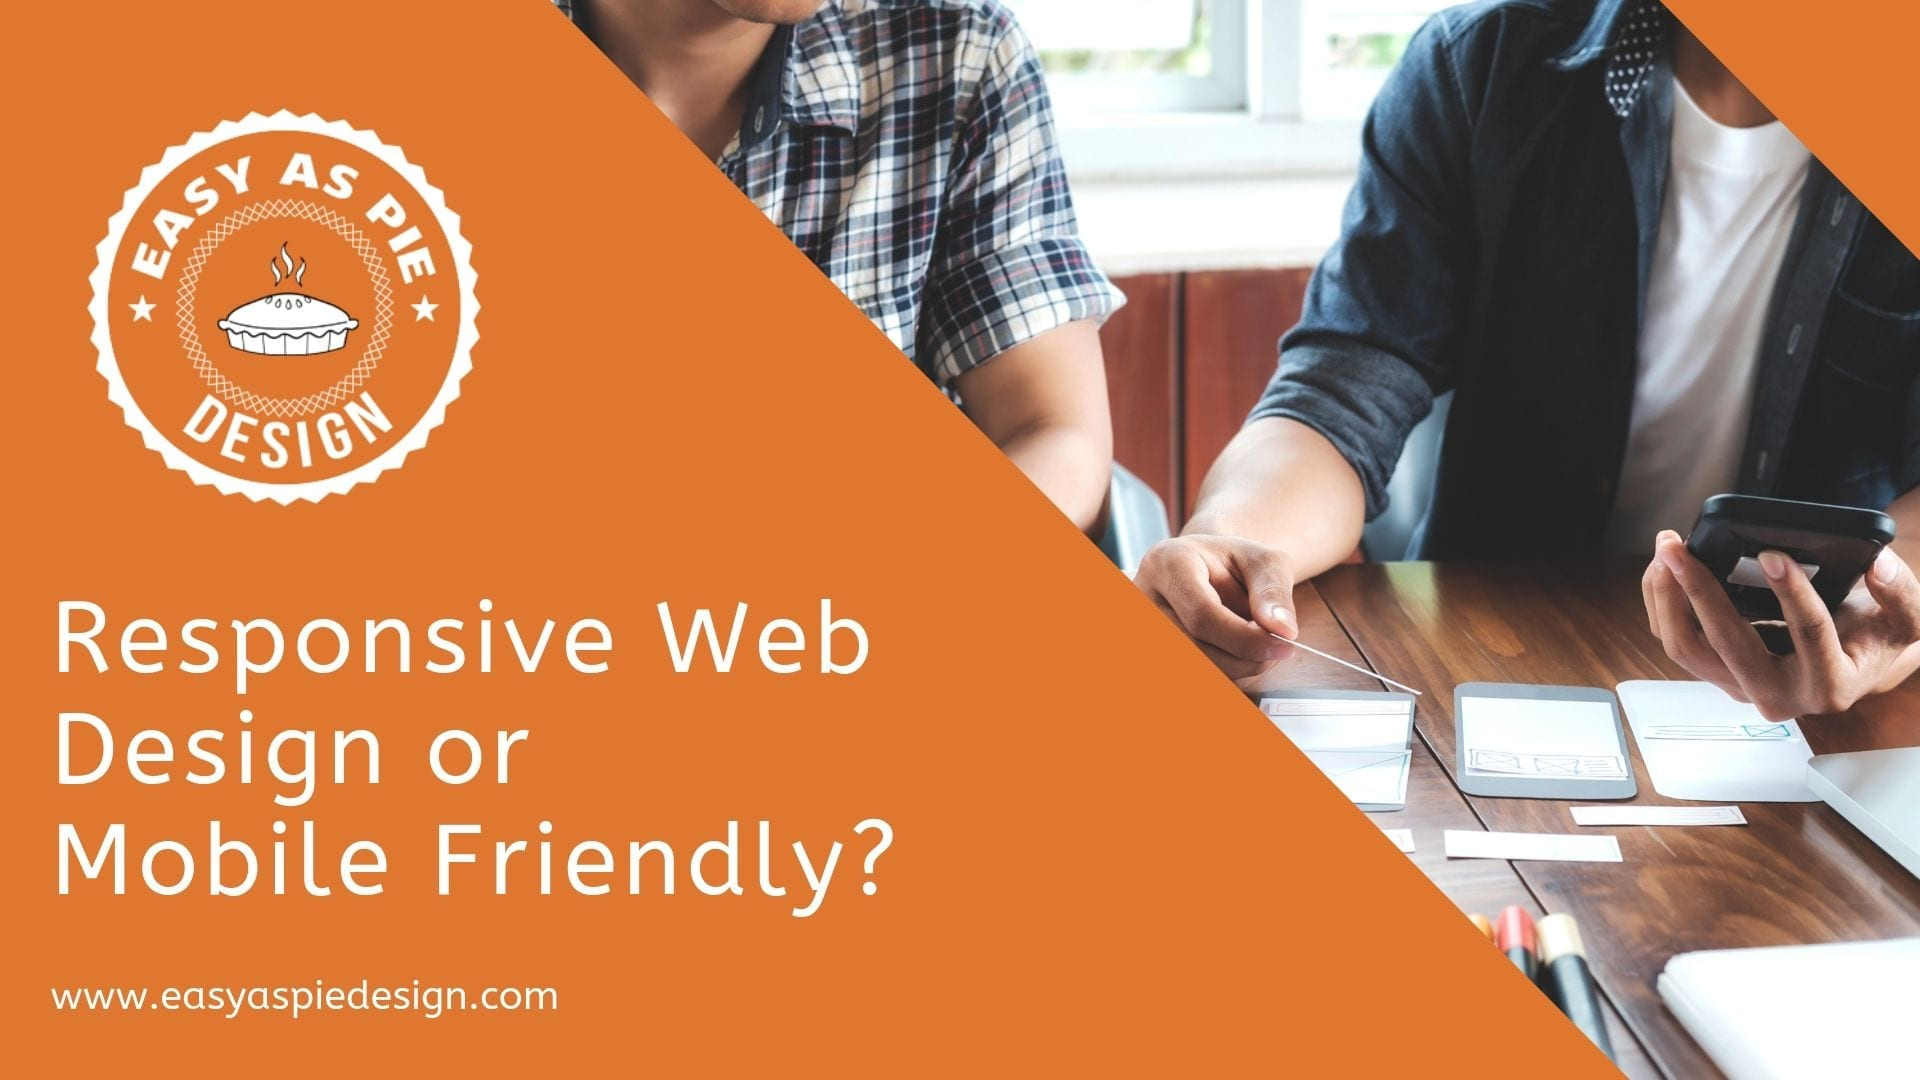 Responsive Web Design or Mobile Friendly?